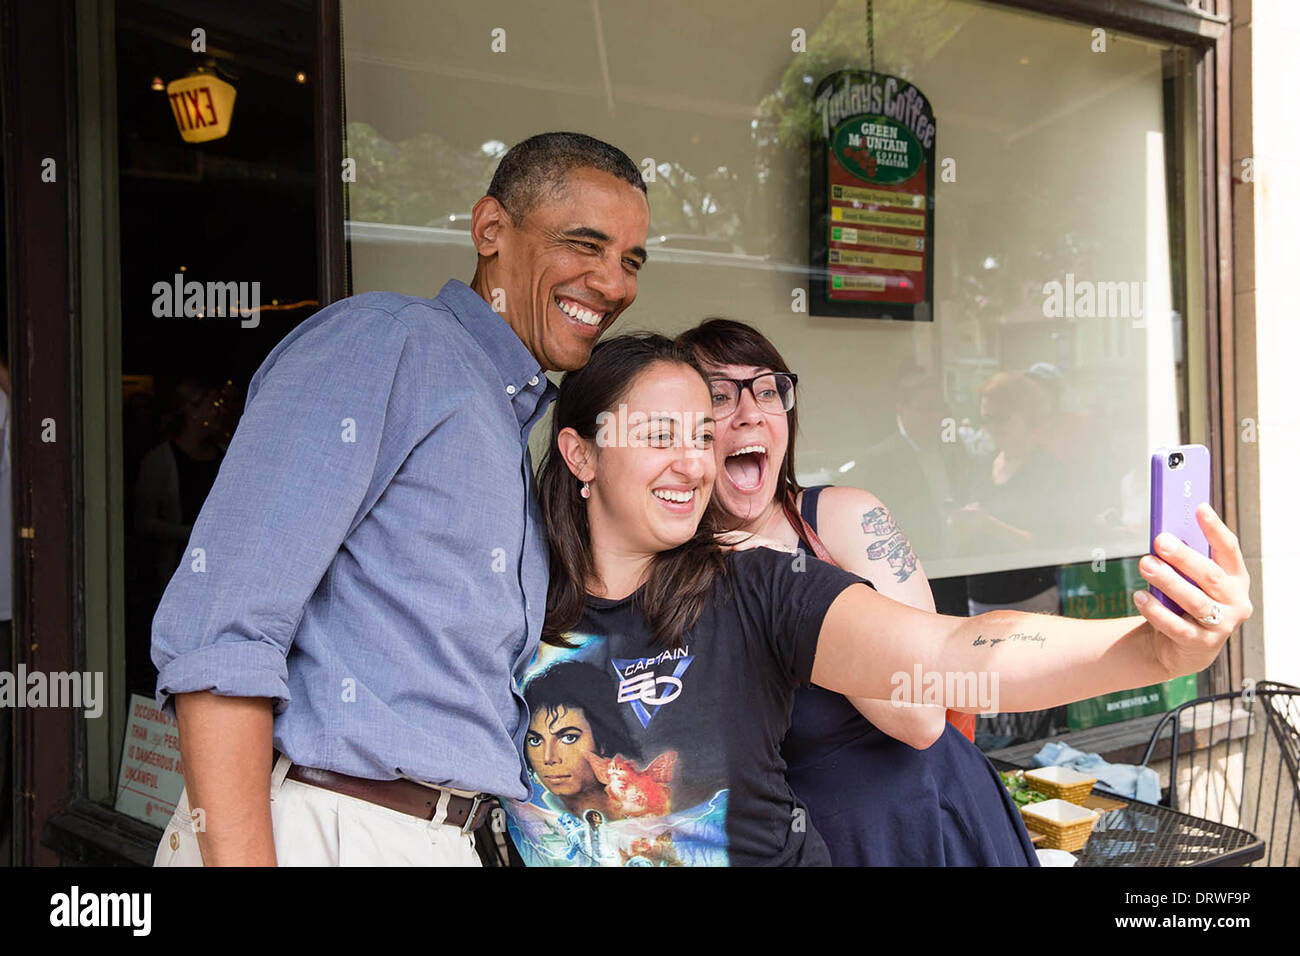 US President Barack Obama poses for a picture at Magnolia's Deli & Café during the college affordability bus tour August 22, 2013 in Rochester, New York. - Stock Image